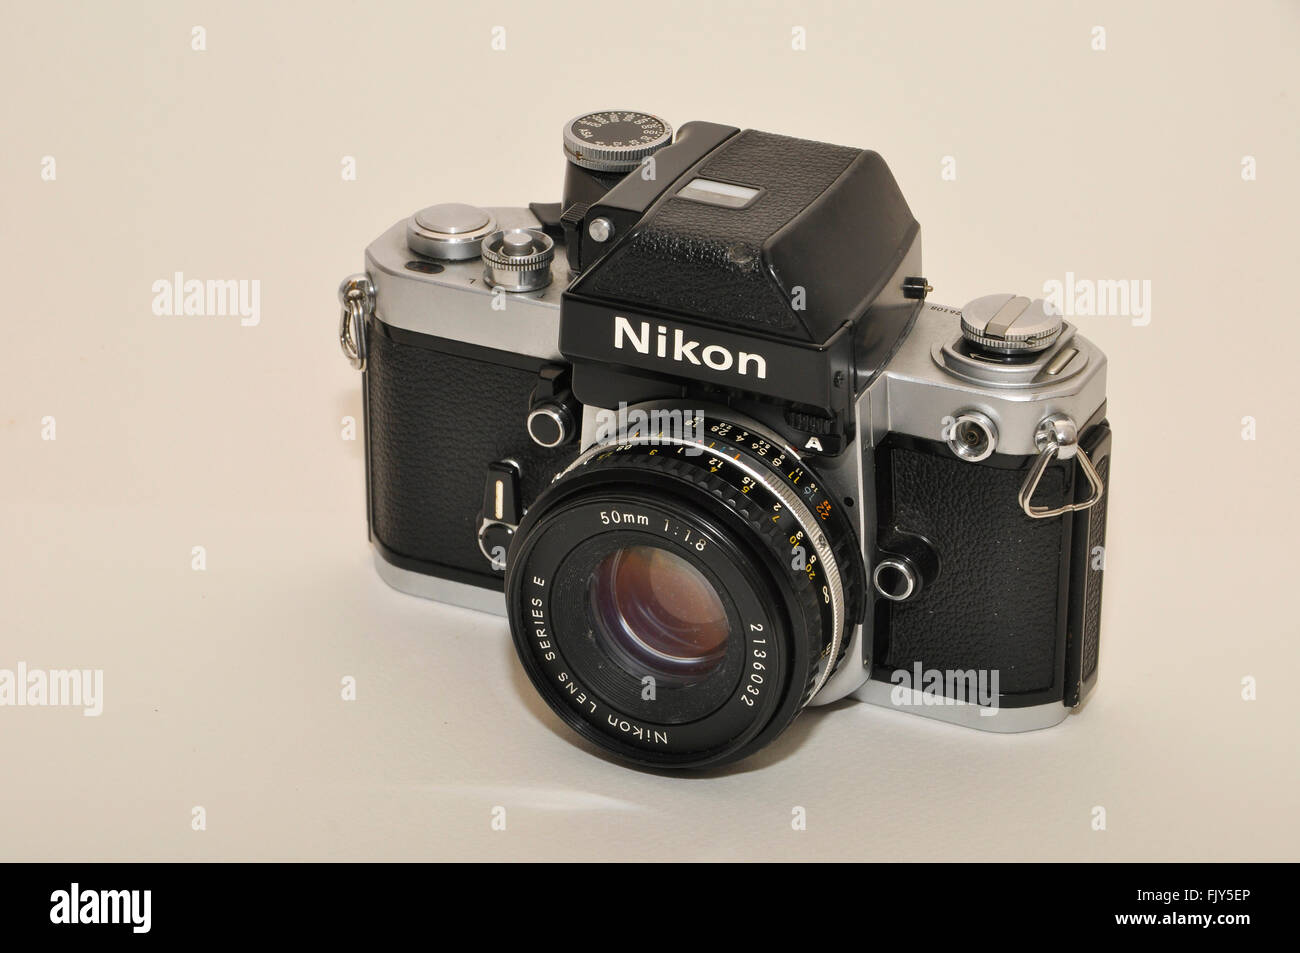 Nikon F2 Photomic A, 35mm, SLR camera 1977-1980 - Stock Image